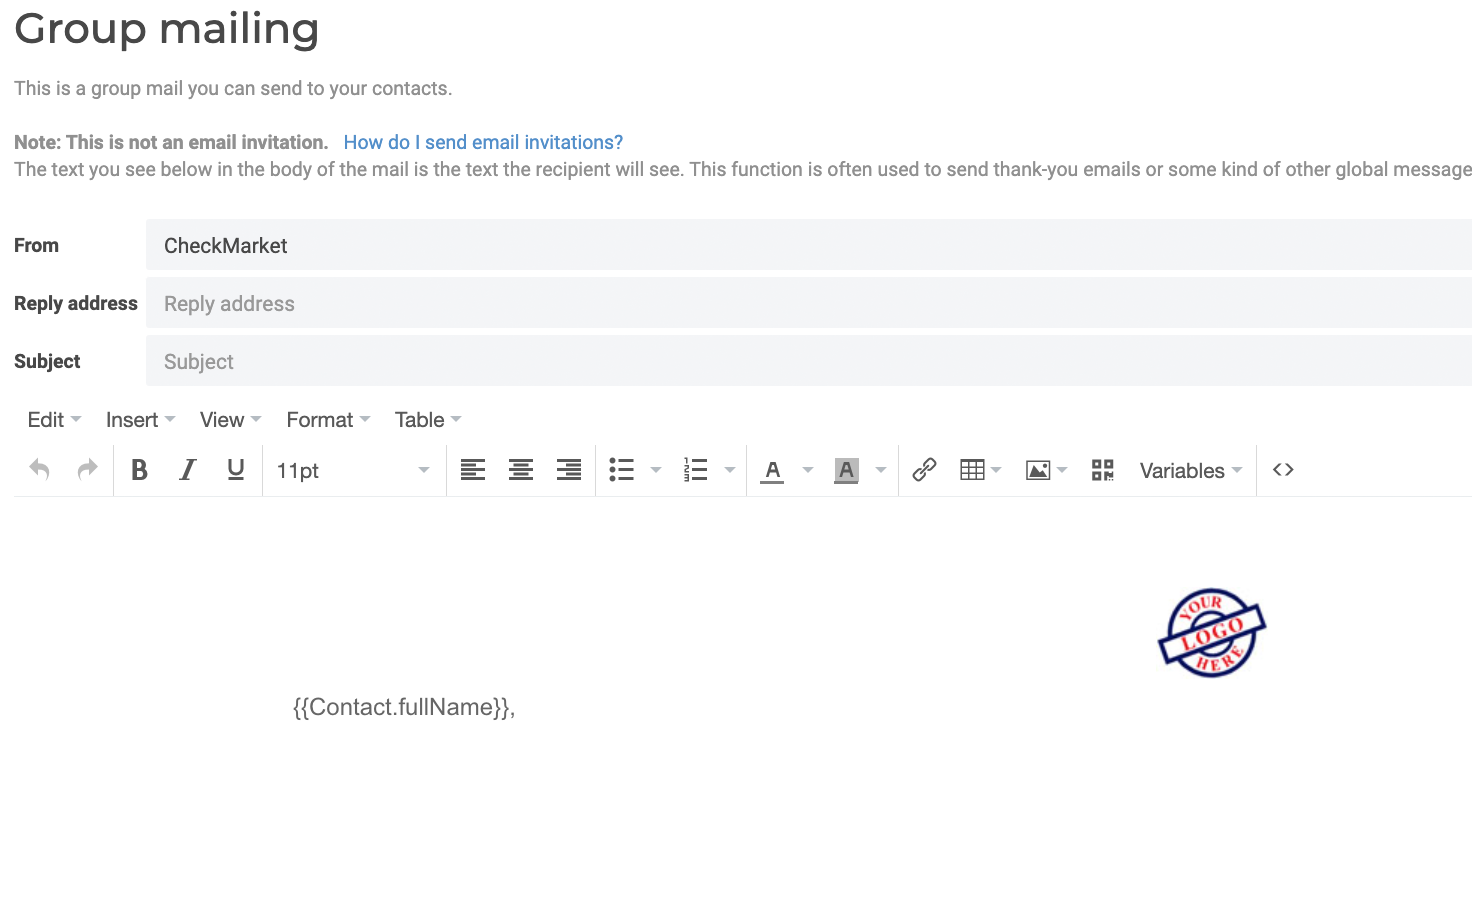 Group mailing email